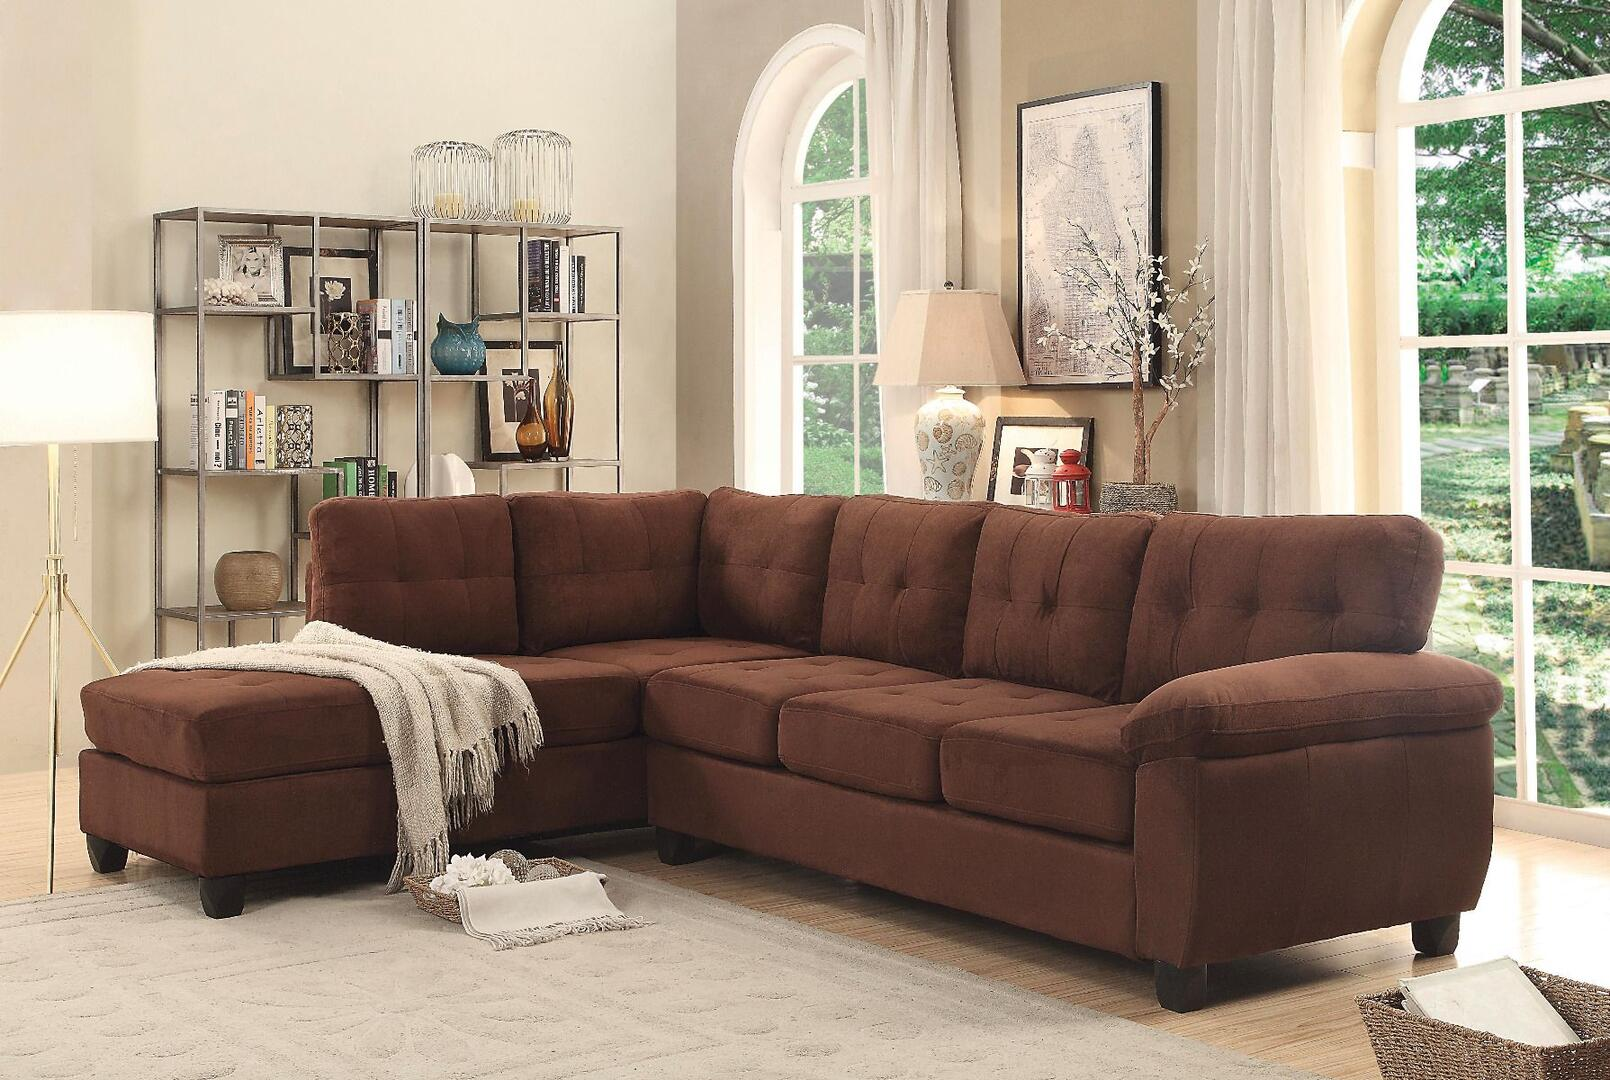 Glory Furniture G902b Sectional Sofa G902bsc Chocolate Suede